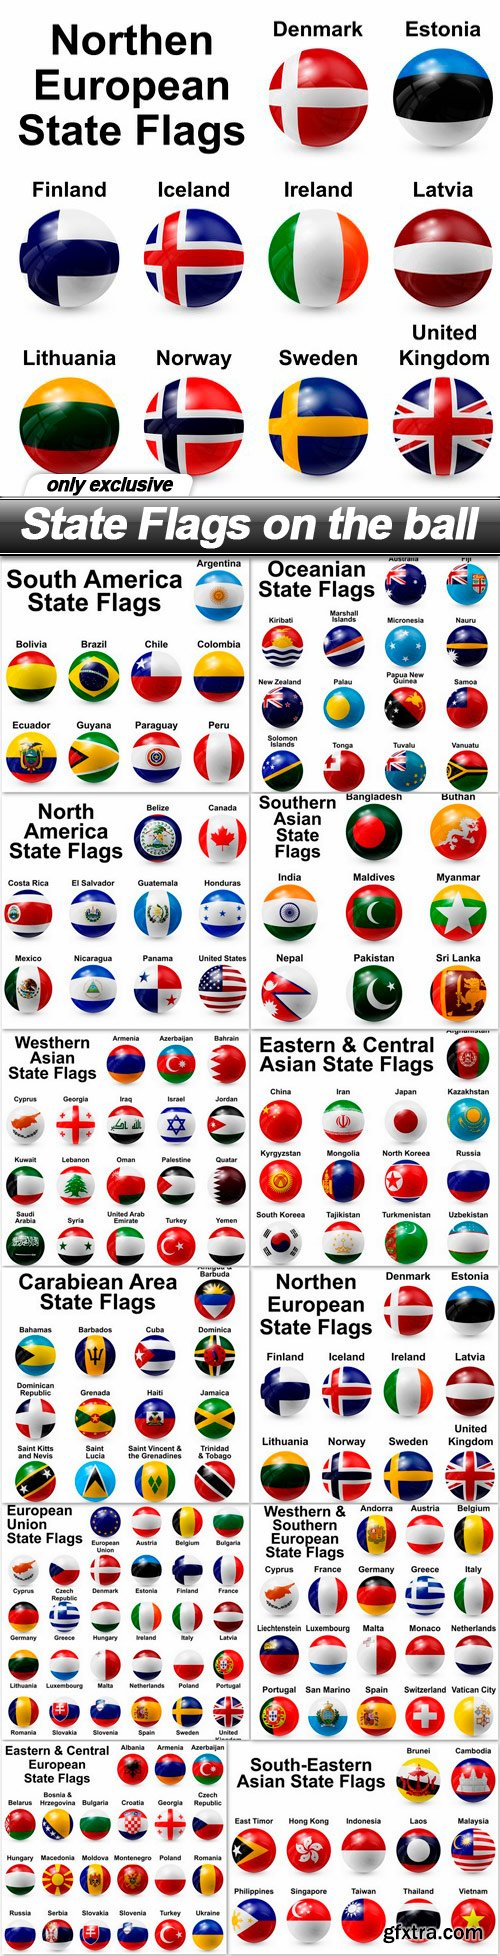 State Flags on the ball - 12 EPS